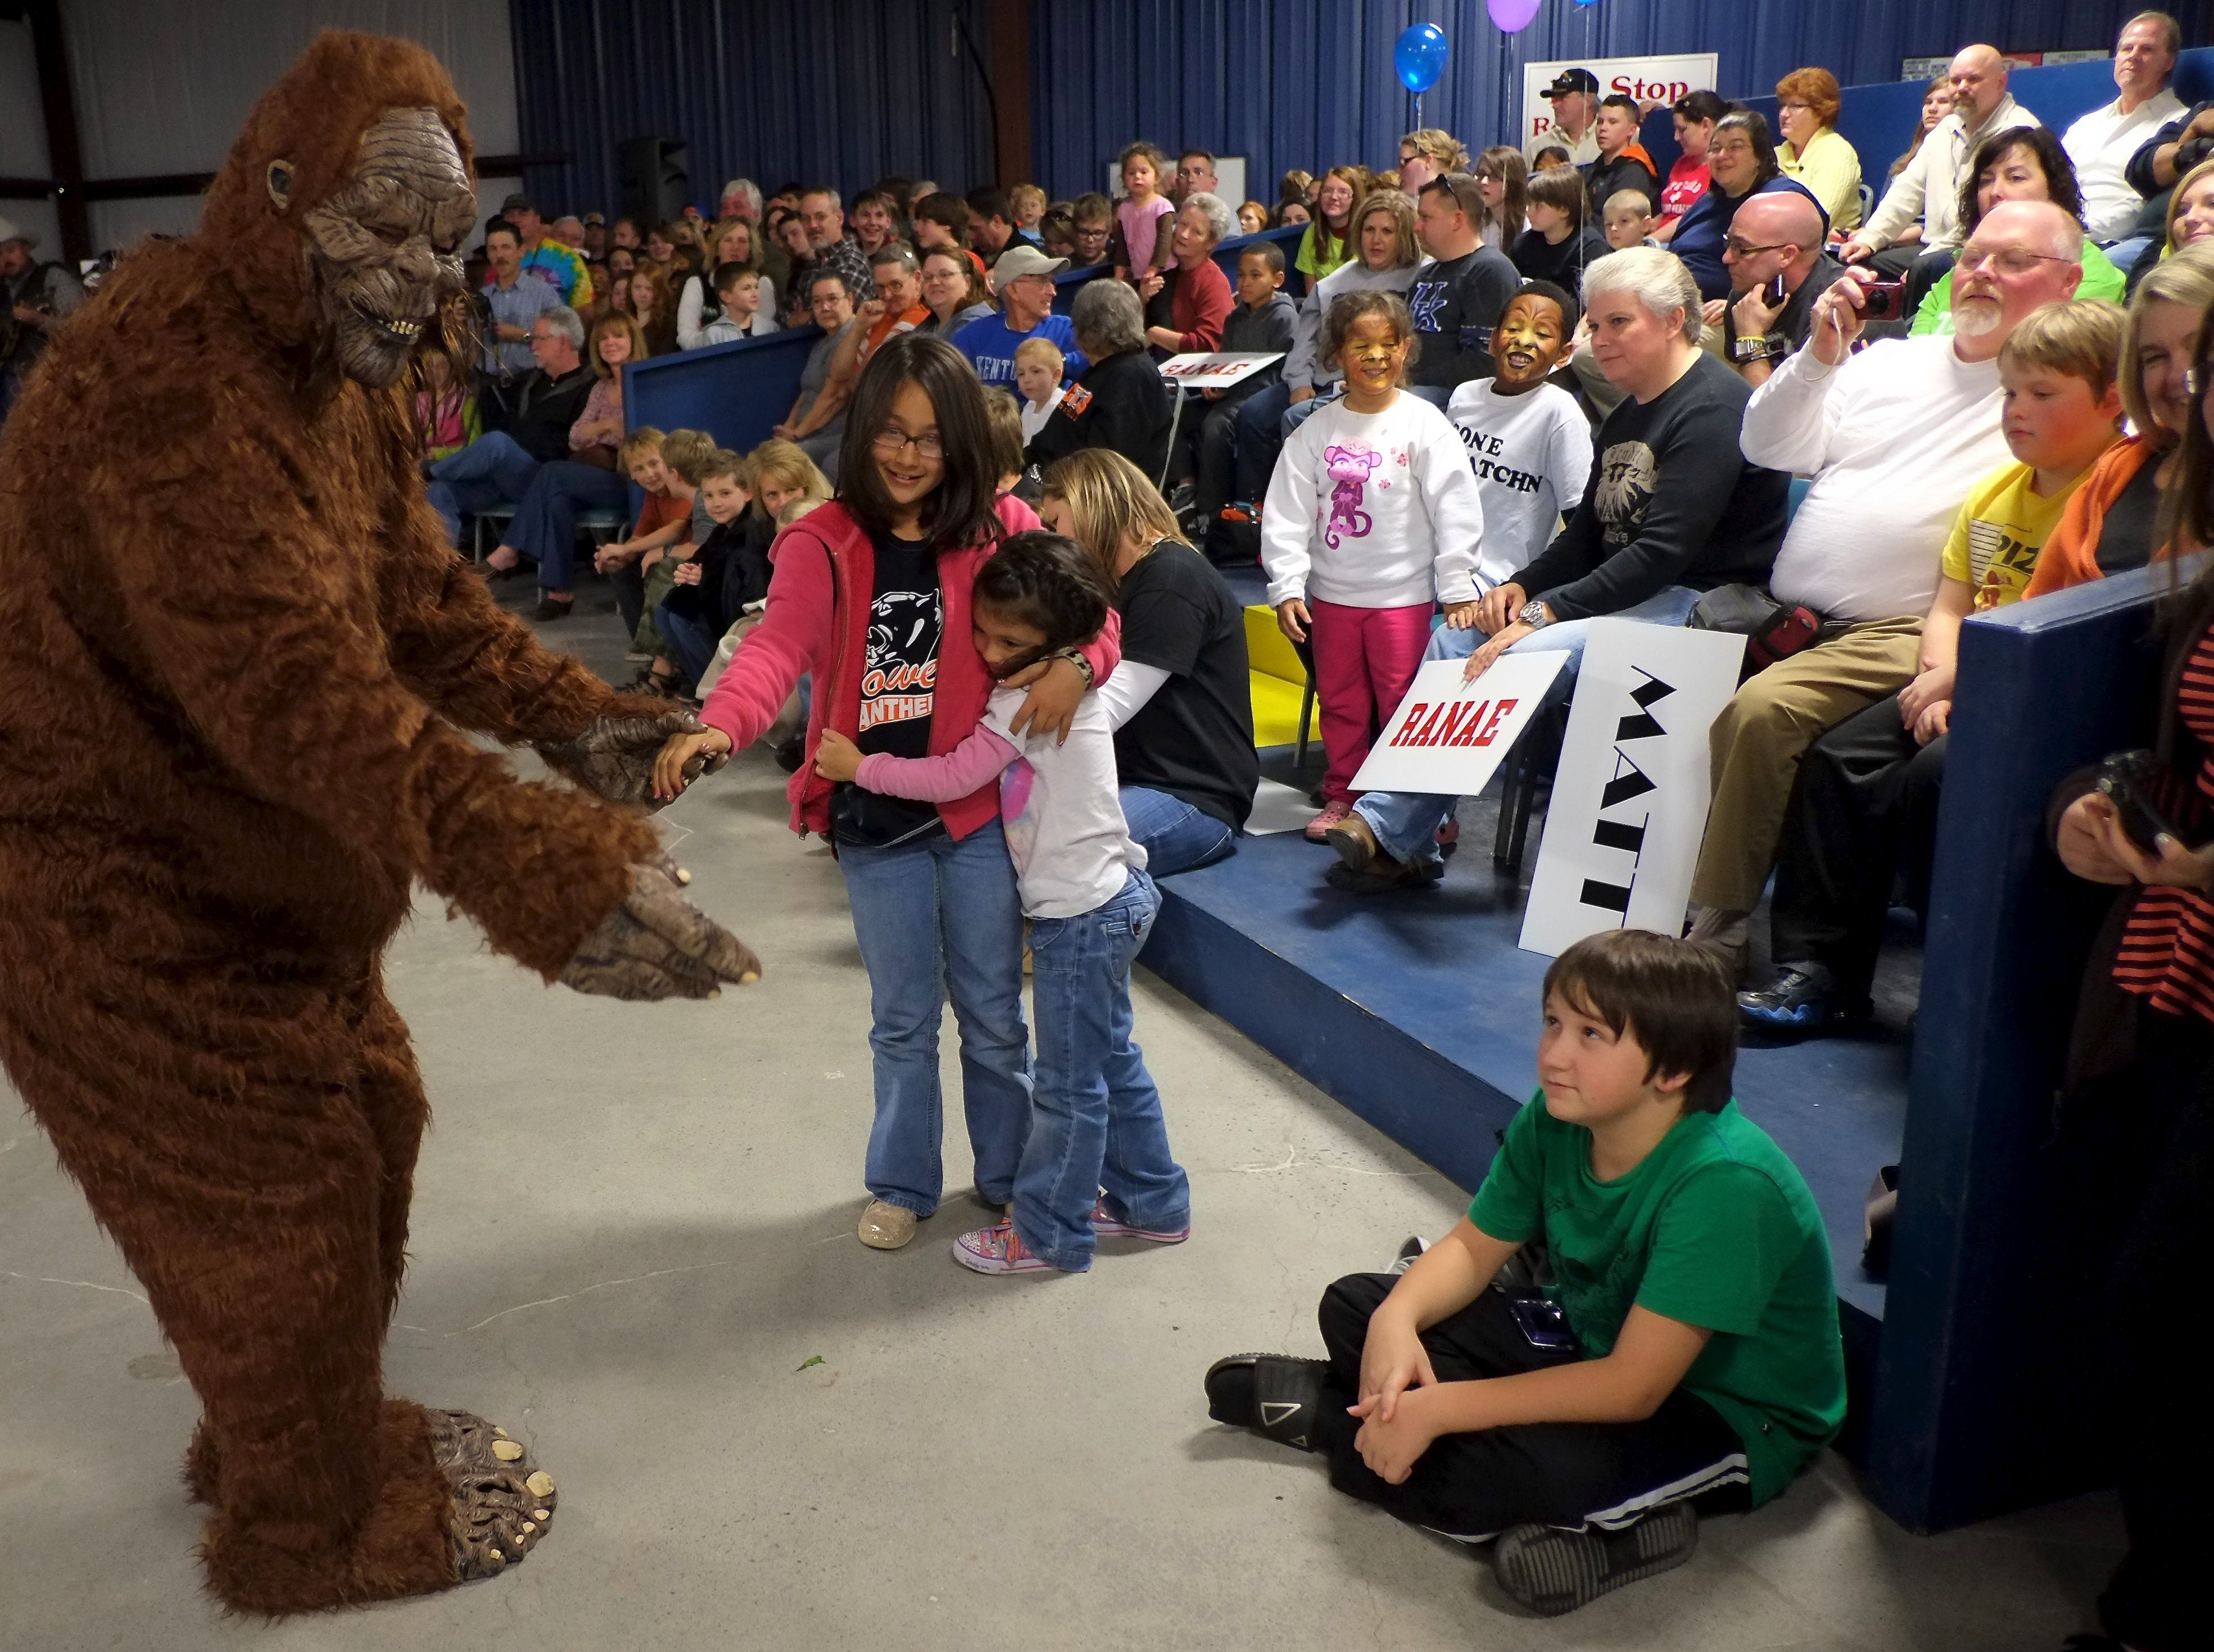 Bigfoot tries to dance with Sydney Chianelli, 9, center, and her sister Maddy Chianelli, 5, before for an appearance by the TV personalities from the Animal Planet's Finding Bigfoot show on Friday, November 16, 2012 at the Powell Auction House.